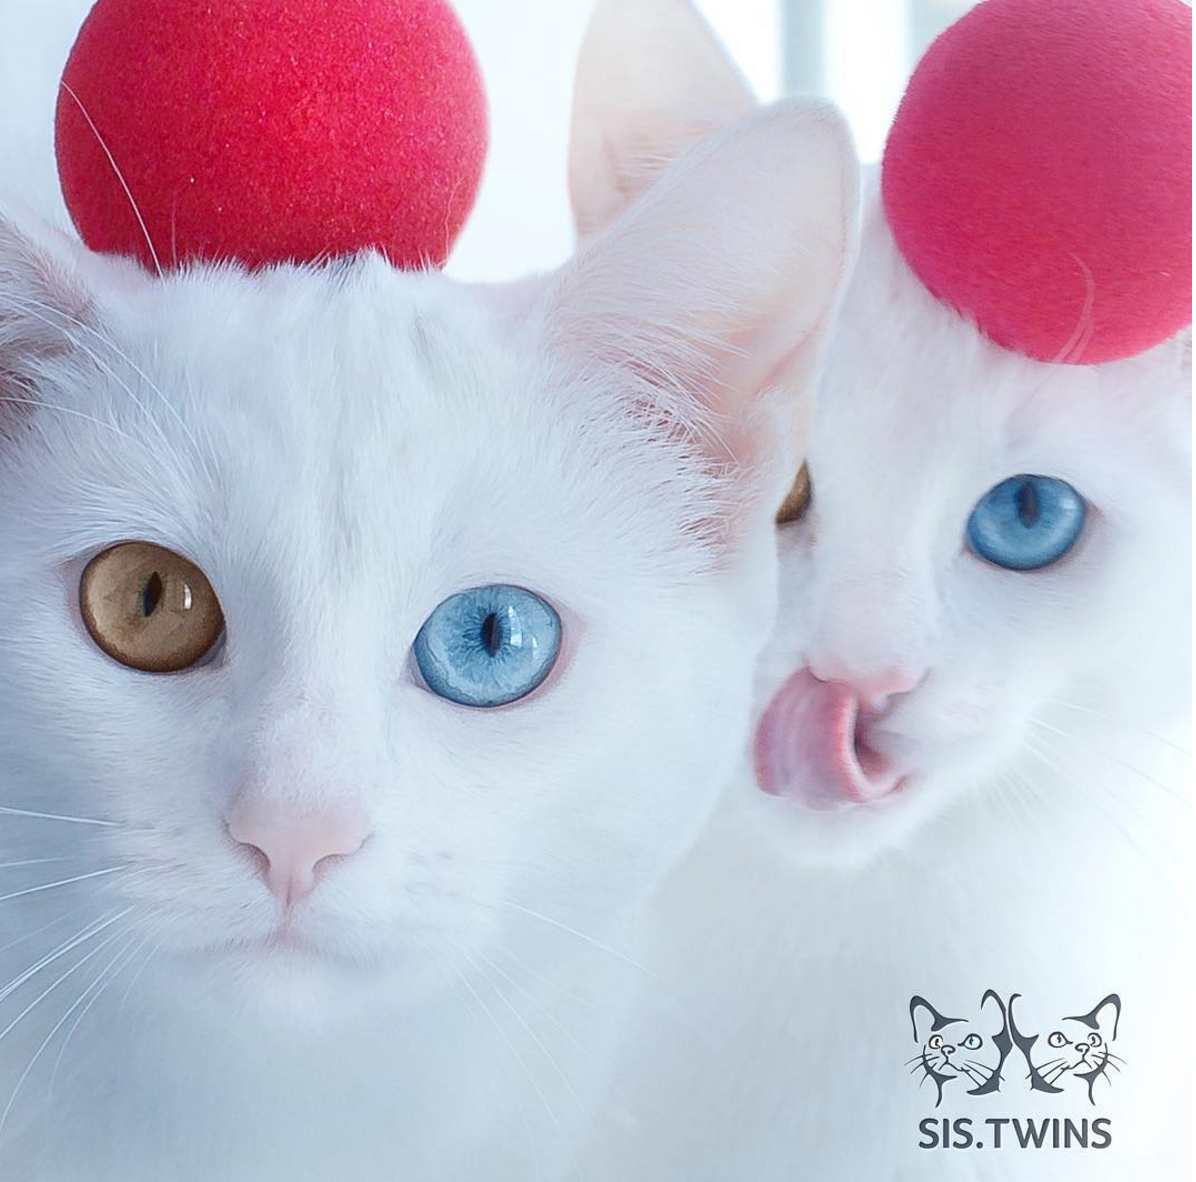 sis twins dazzle with jewellike eyes life with cats